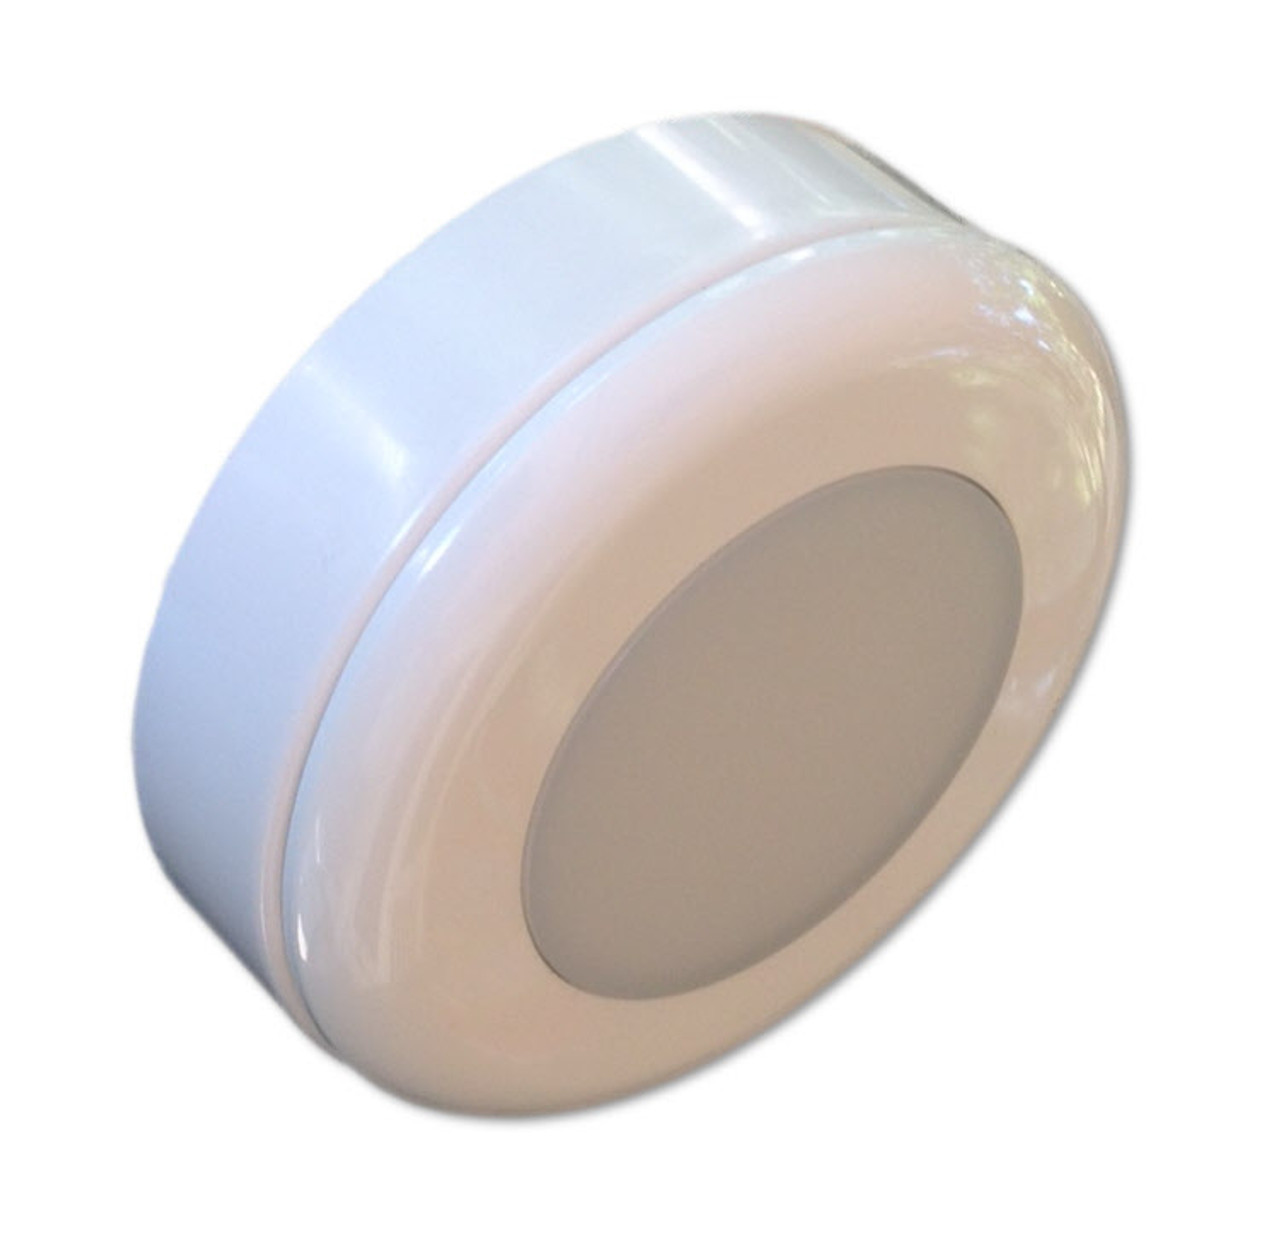 Converts easily to surface mount puck light with included spacer